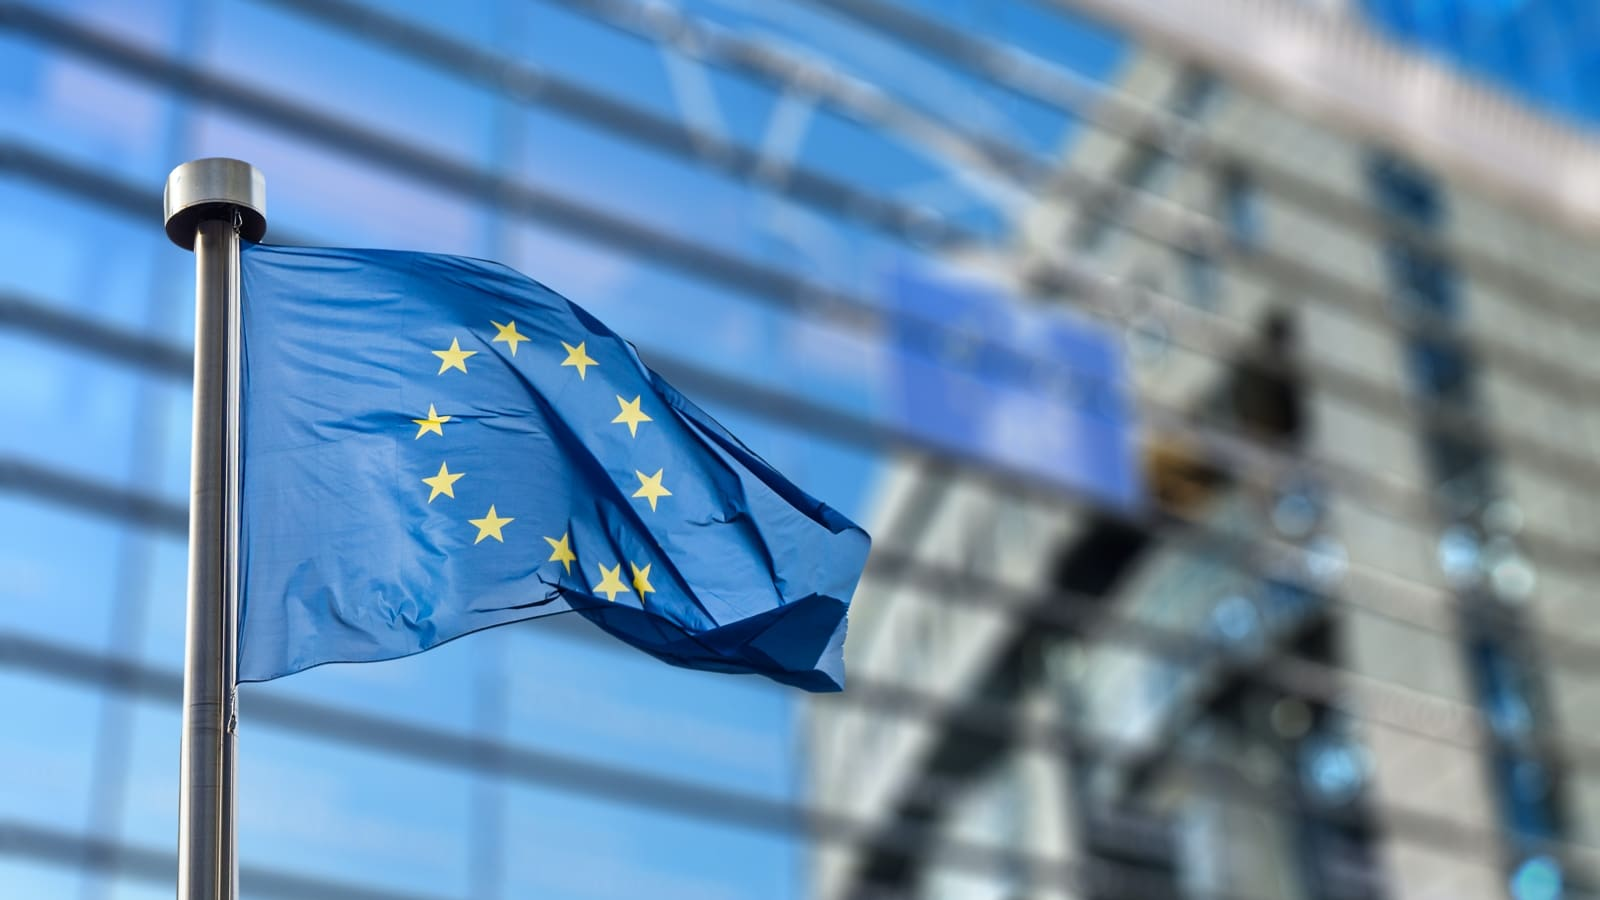 How to comply with the General Data Protection Regulation (GDPR)